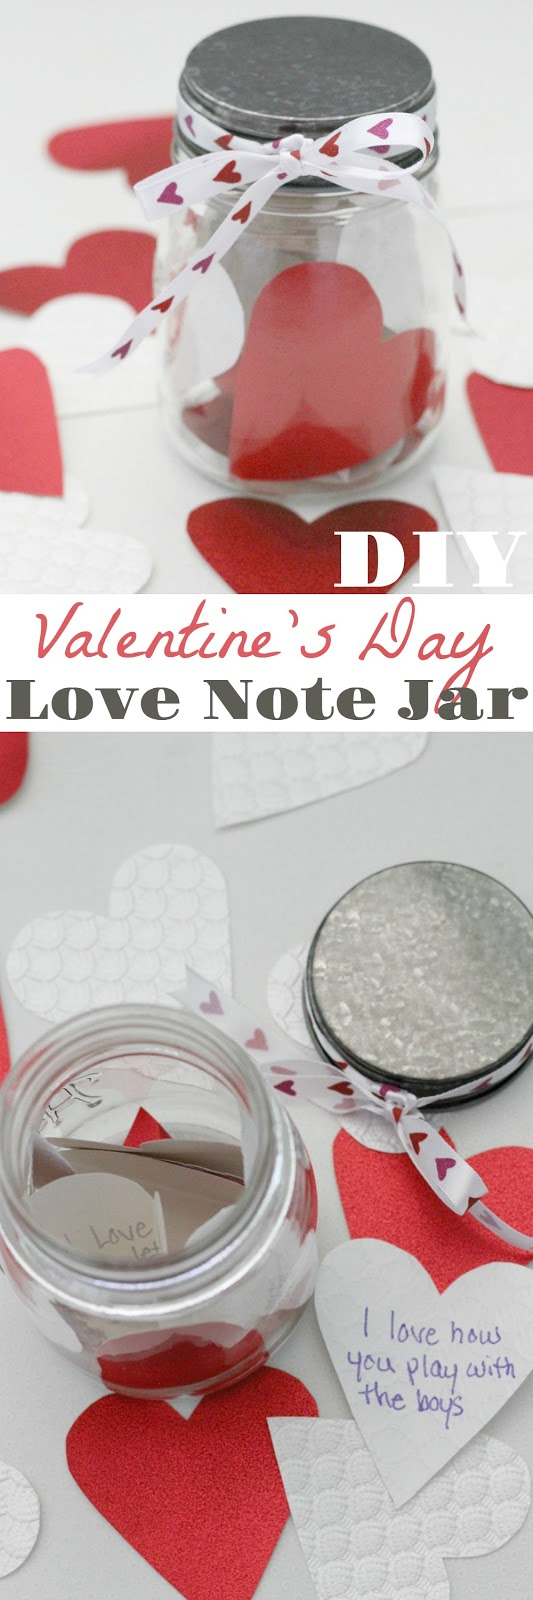 This easy DIY is a great gift for a loved on that doesn't involve candy for Valentine's Day